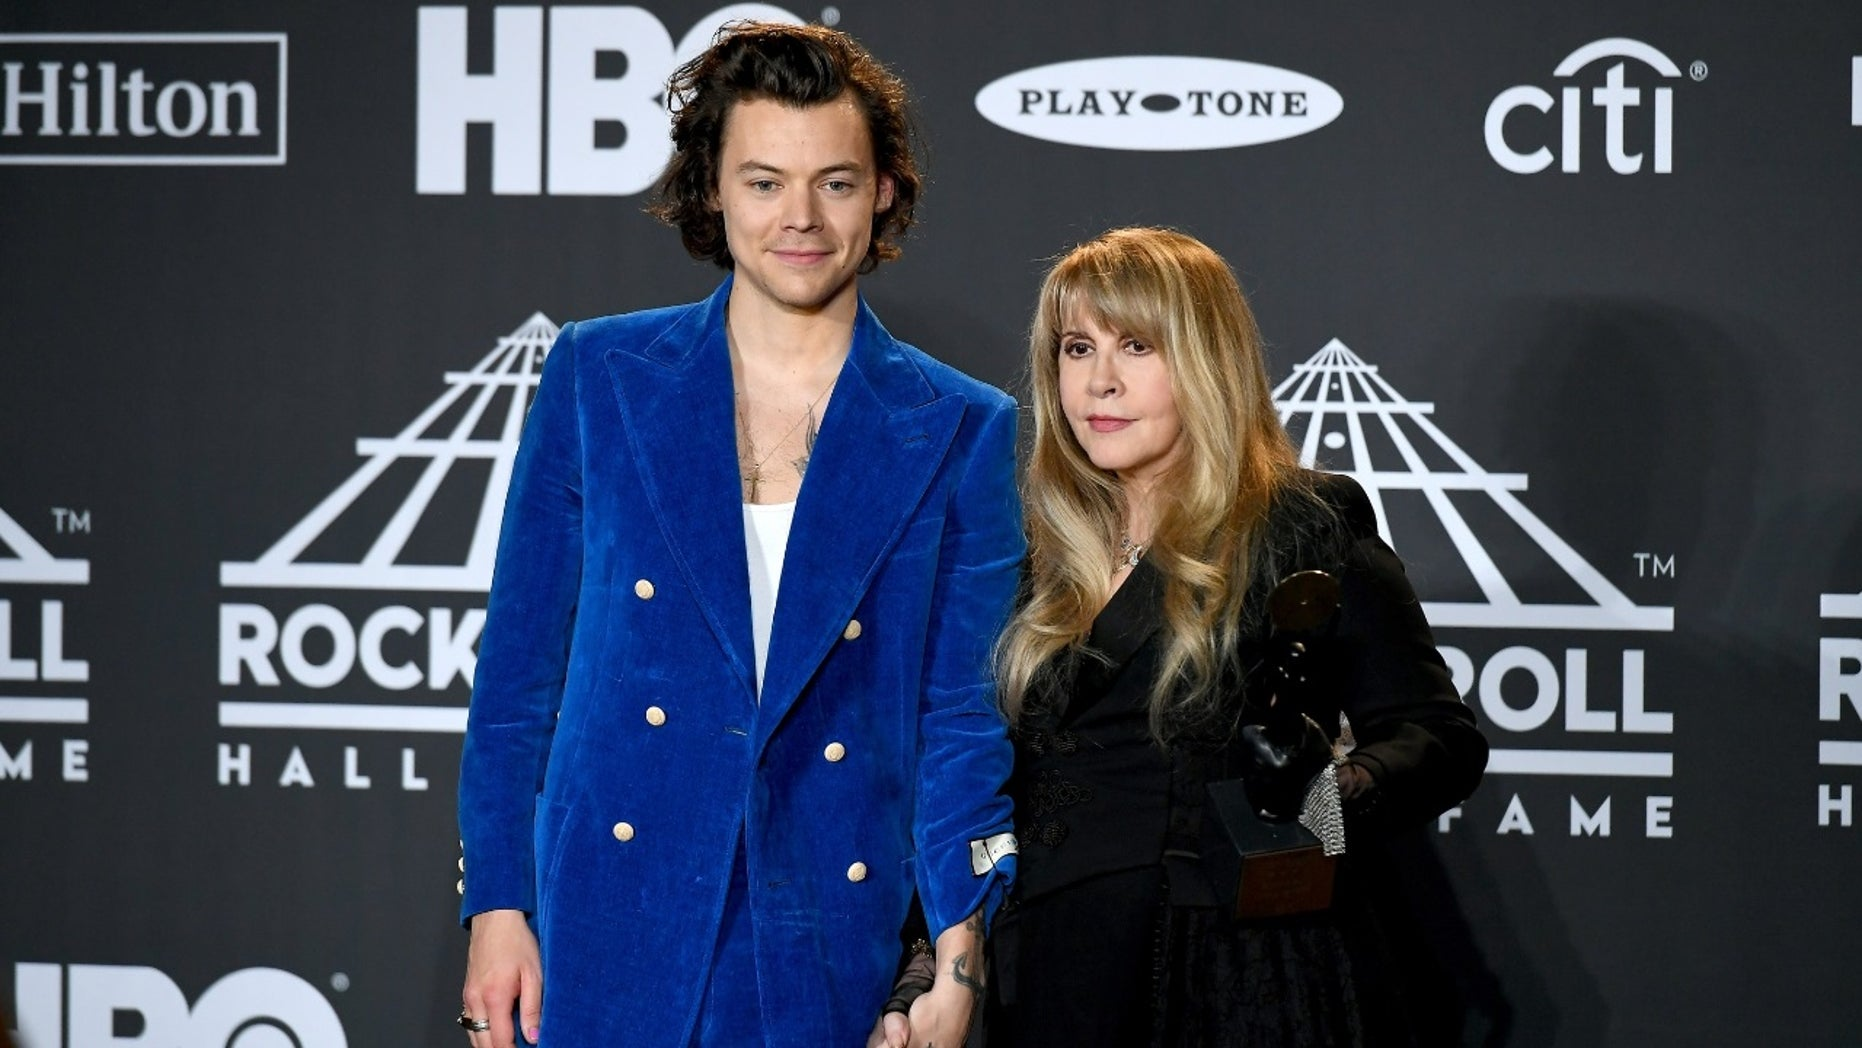 Stevie Nicks accidentally referred to Harry Styles as a member of NSYNC at Friday's Rock and Roll Hall of Fame ceremony.